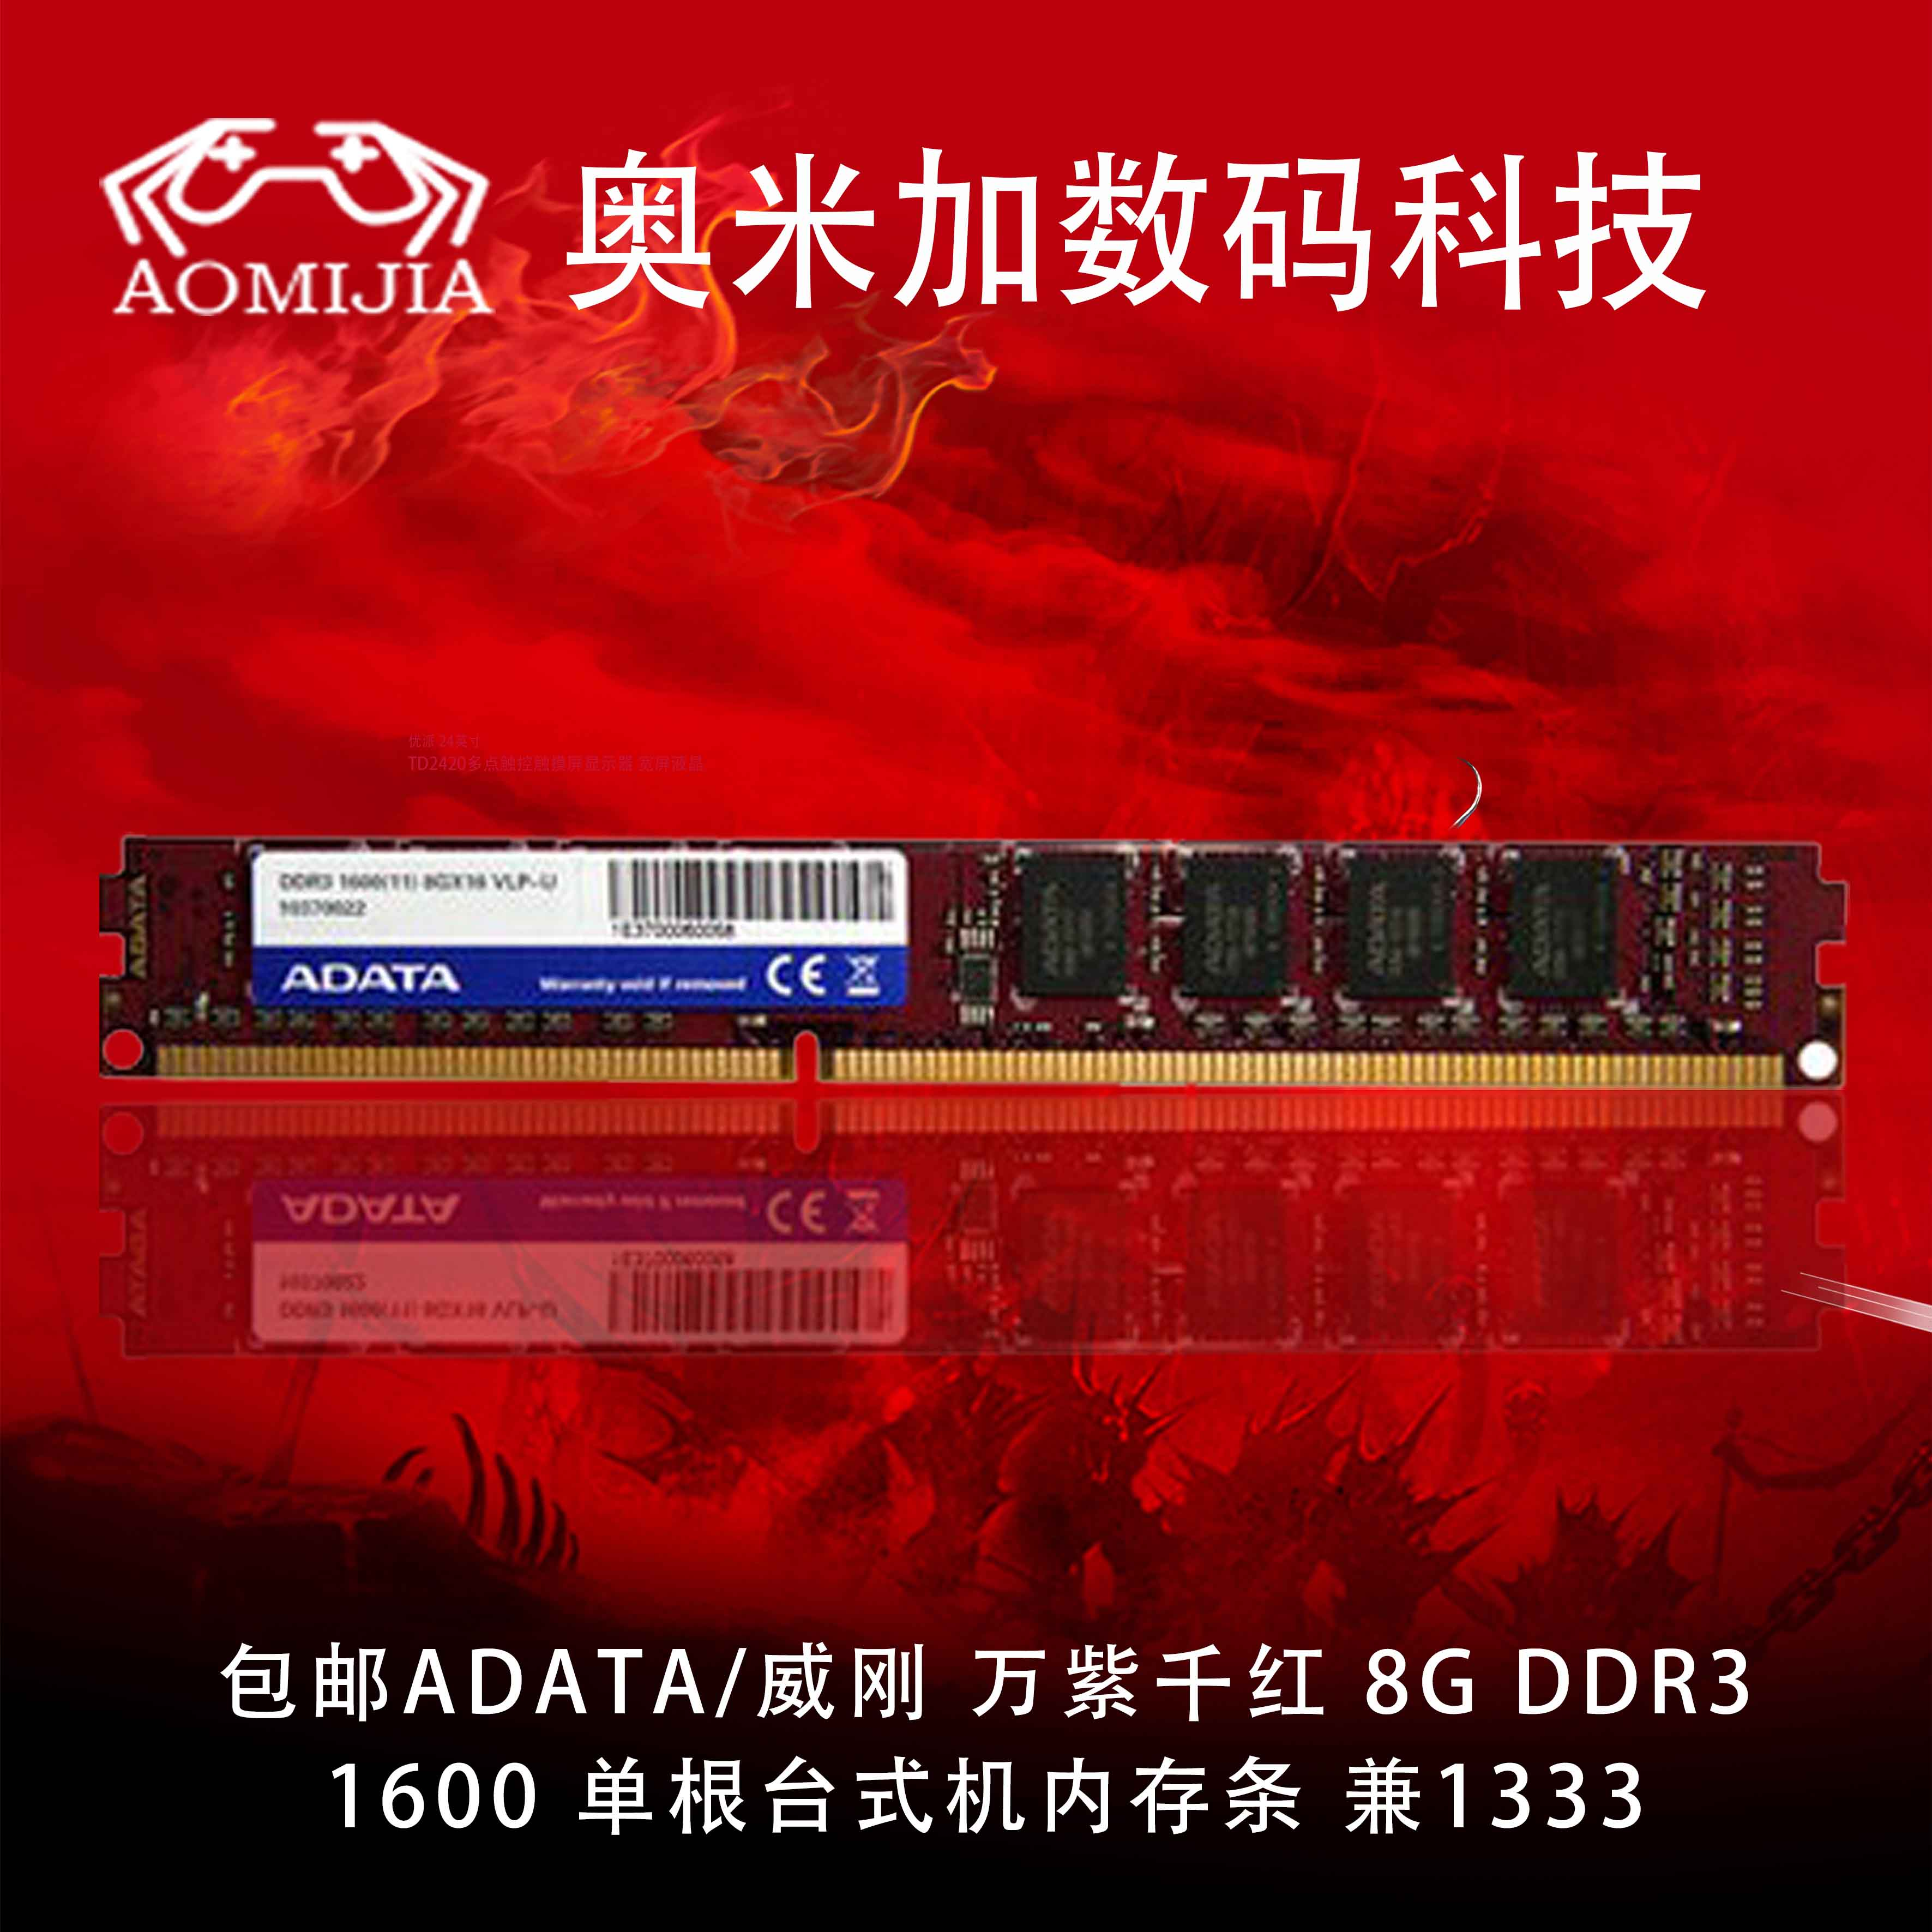 Ddr3 1600 8g, AData/Awesome Red Purple 8G DDR3 1600 Single Desktop Memory